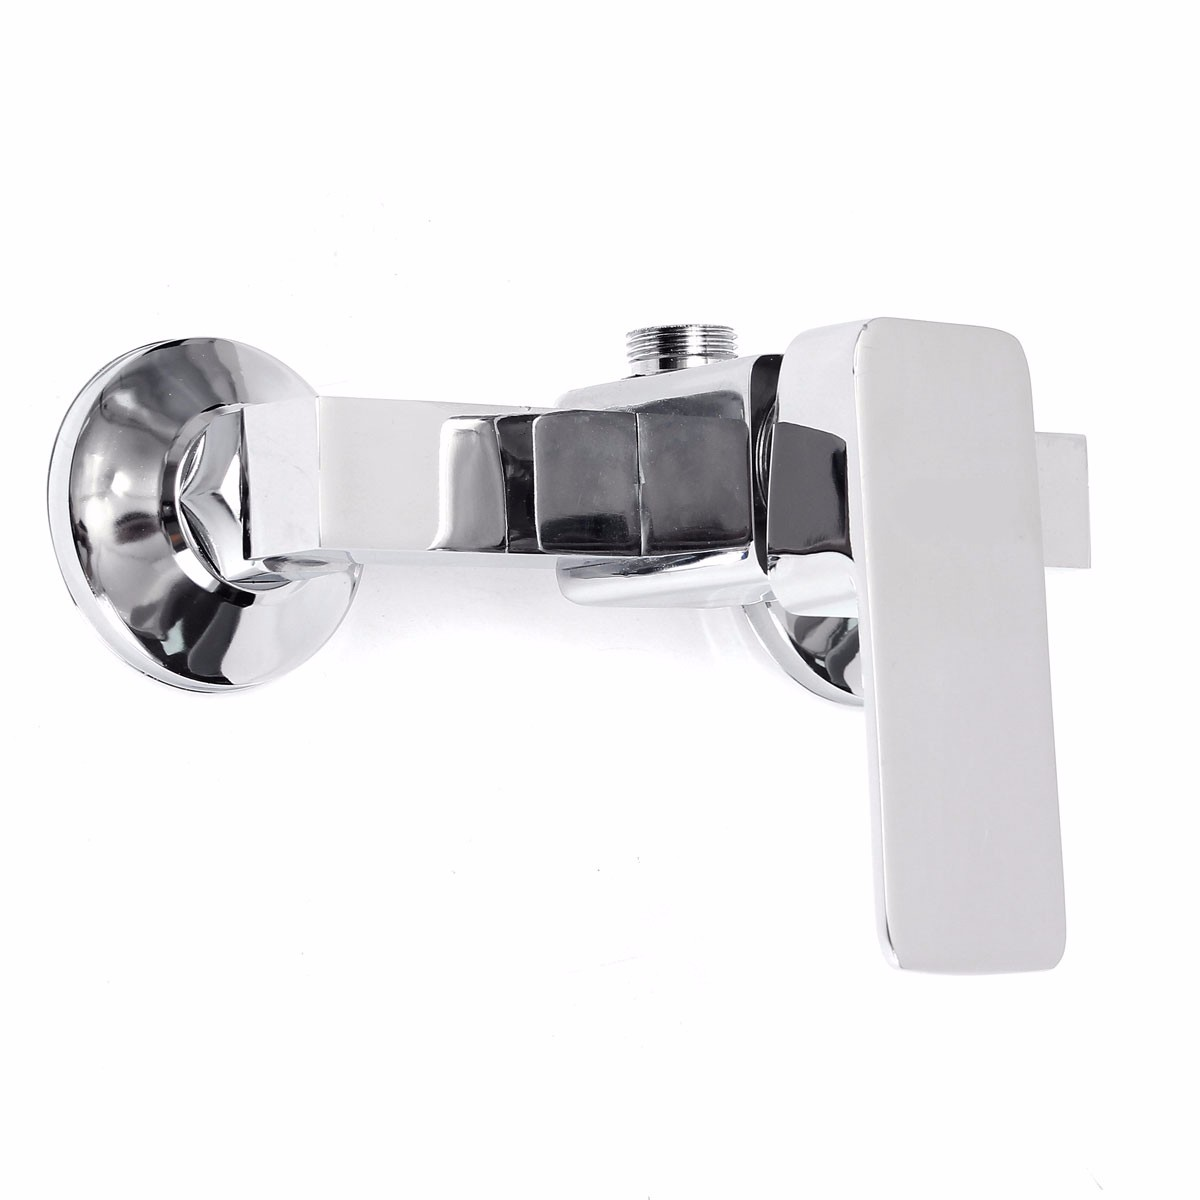 chrome plated zinc alloy bathroom mixer faucet tap wall mounted shower mixing valve hot and cold